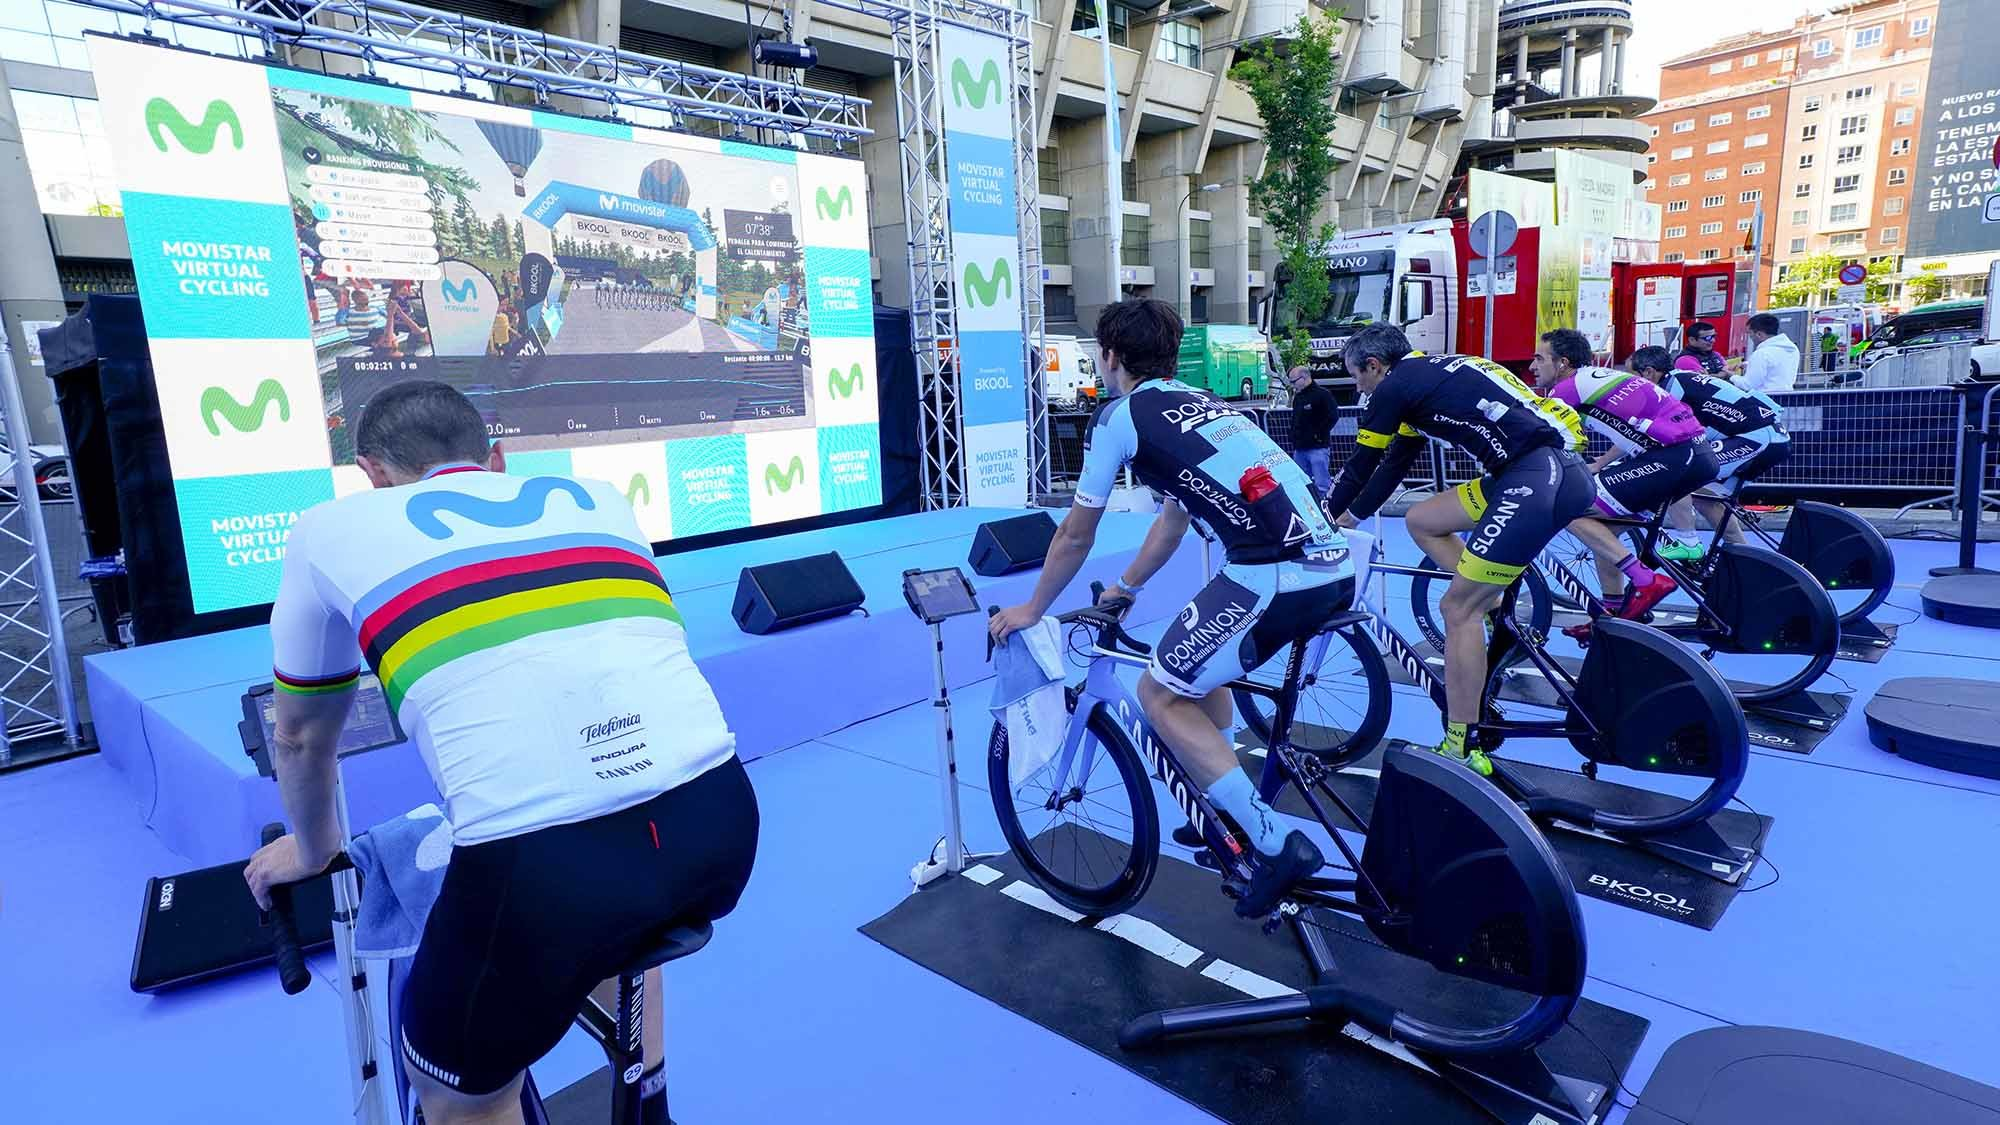 Imagen del Movistar Virtual Cycling celebrado en Madrid. CEDIDA